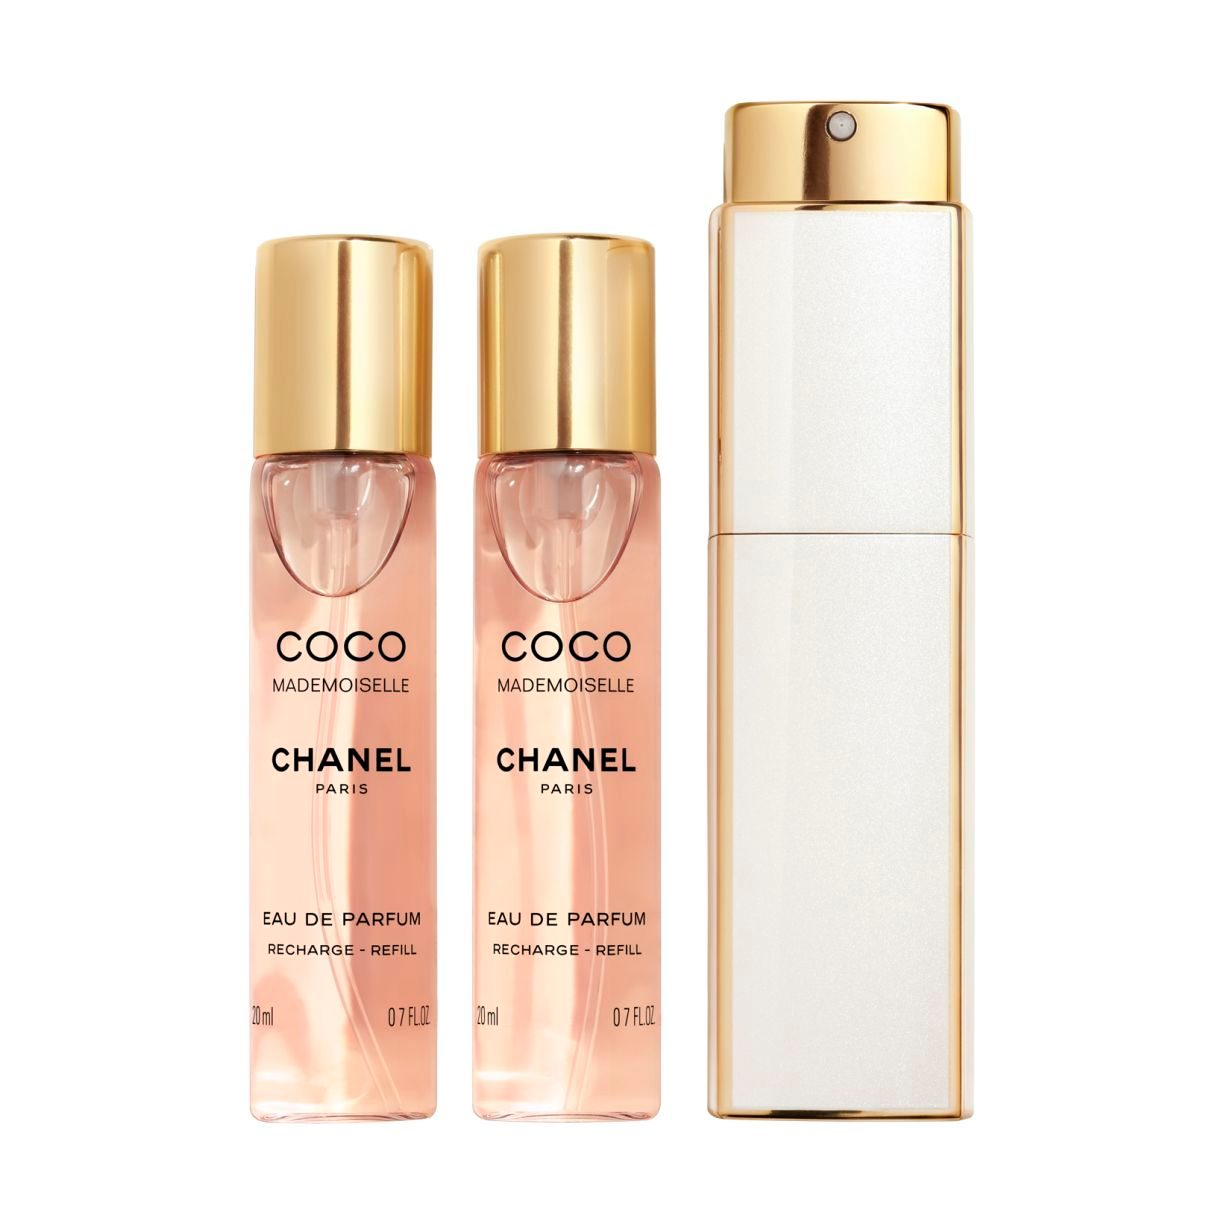 COCO MADEMOISELLE EAU DE PARFUM TWIST AND SPRAY 3 X 20ML